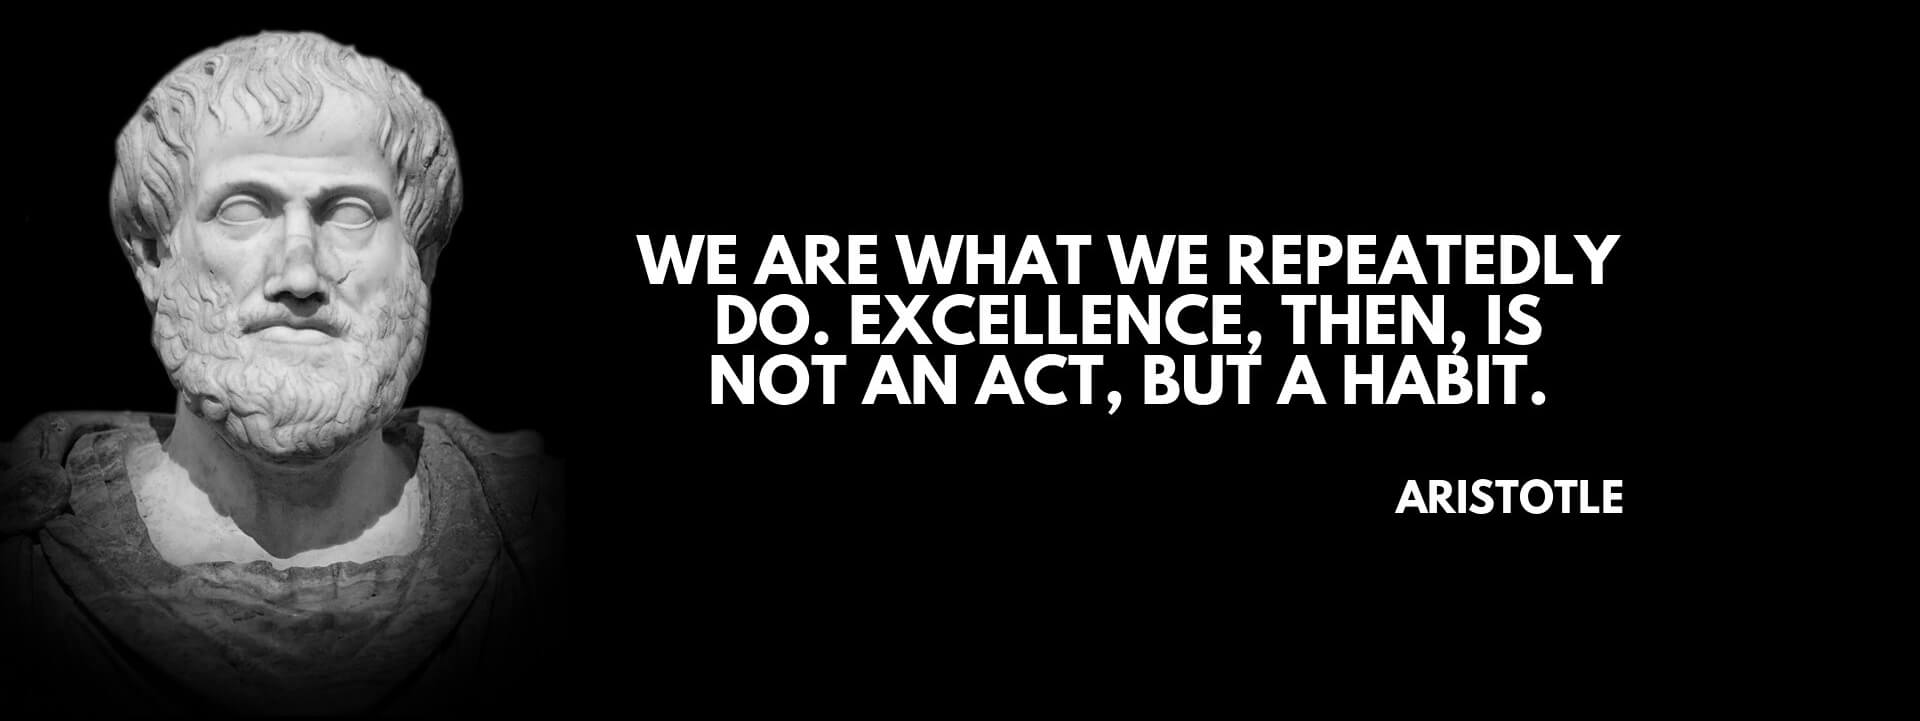 aristotle_quote_we_are_what_we_repeatedly_do_excellence_then_is_not_an_act_but_a_habit_5742.jpg